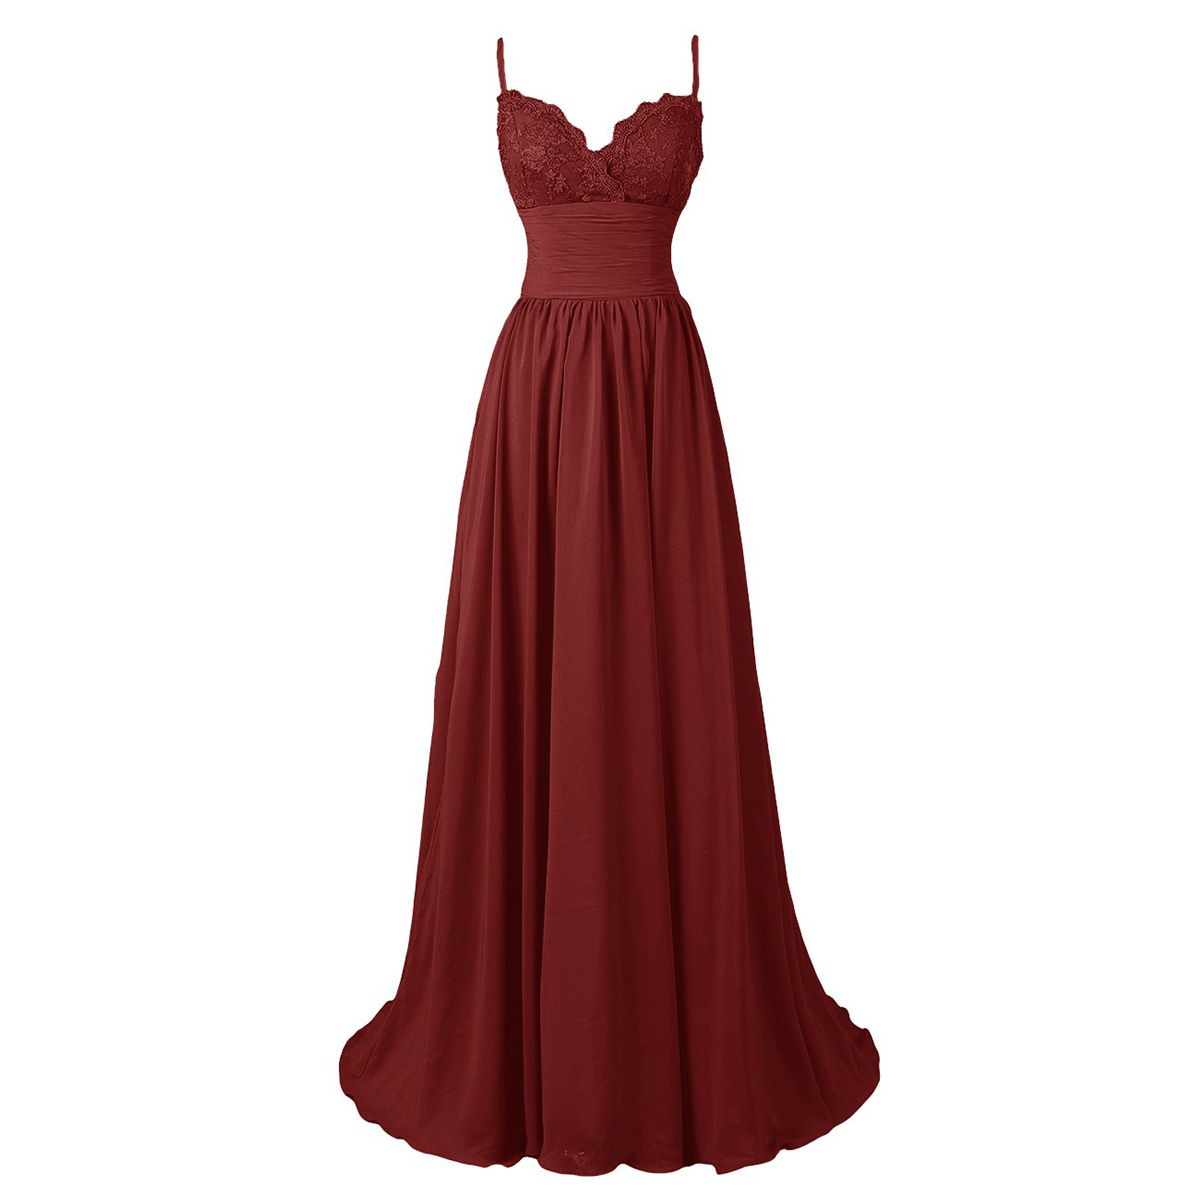 6755fb9b375 Burgundy Floor Length A-Line Pleated Prom Dress Featuring Lace Plunge V  Spaghetti Strap Bodice with Ruched Belt